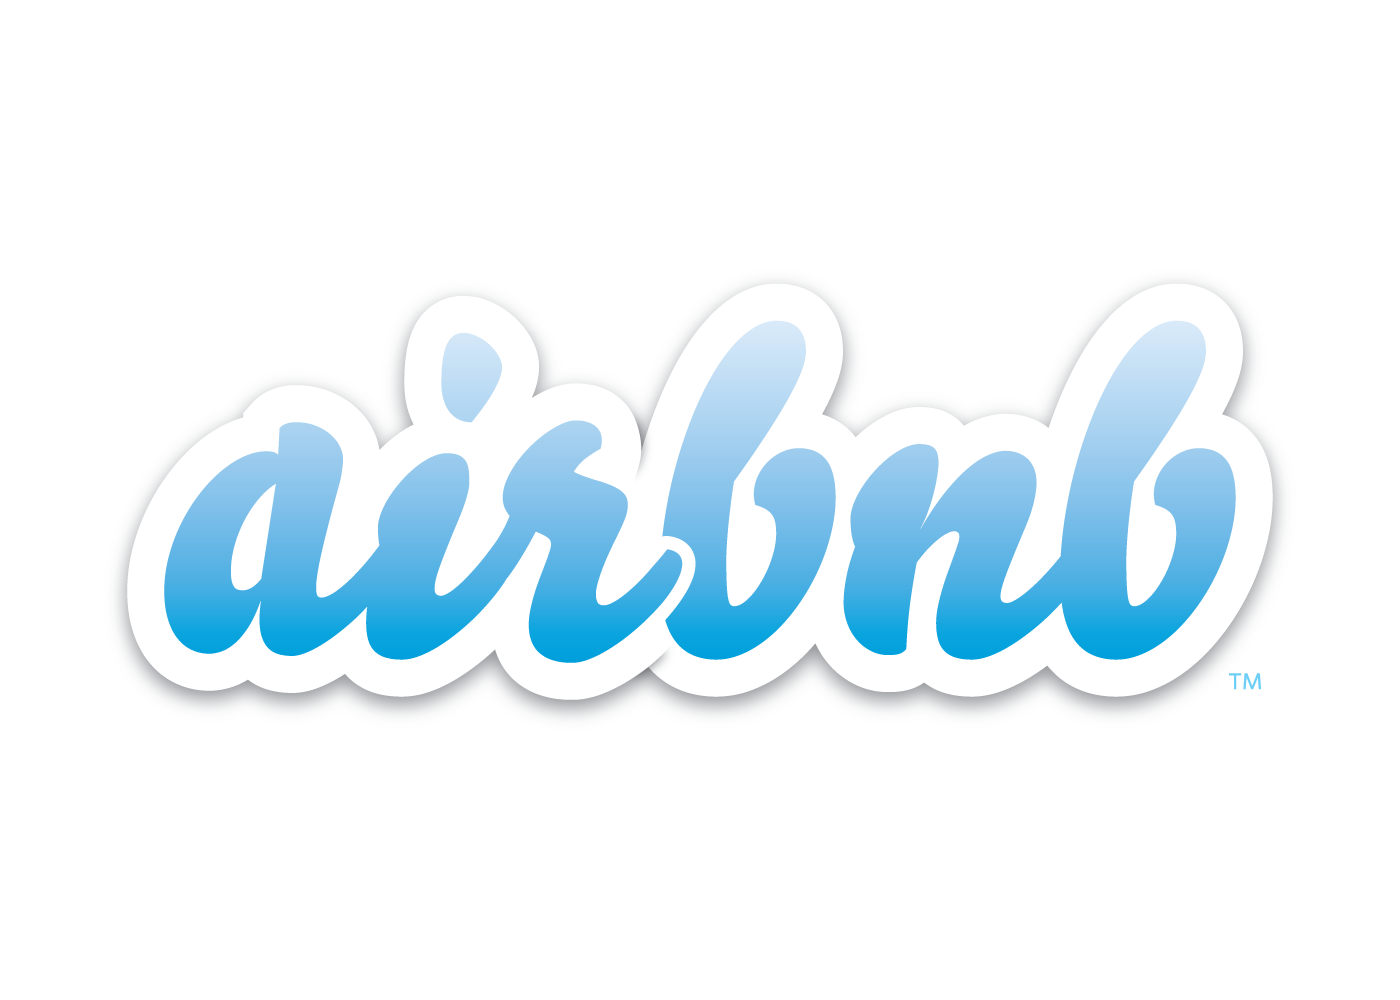 Airbnb Logo 2008 14 Fonts In Use